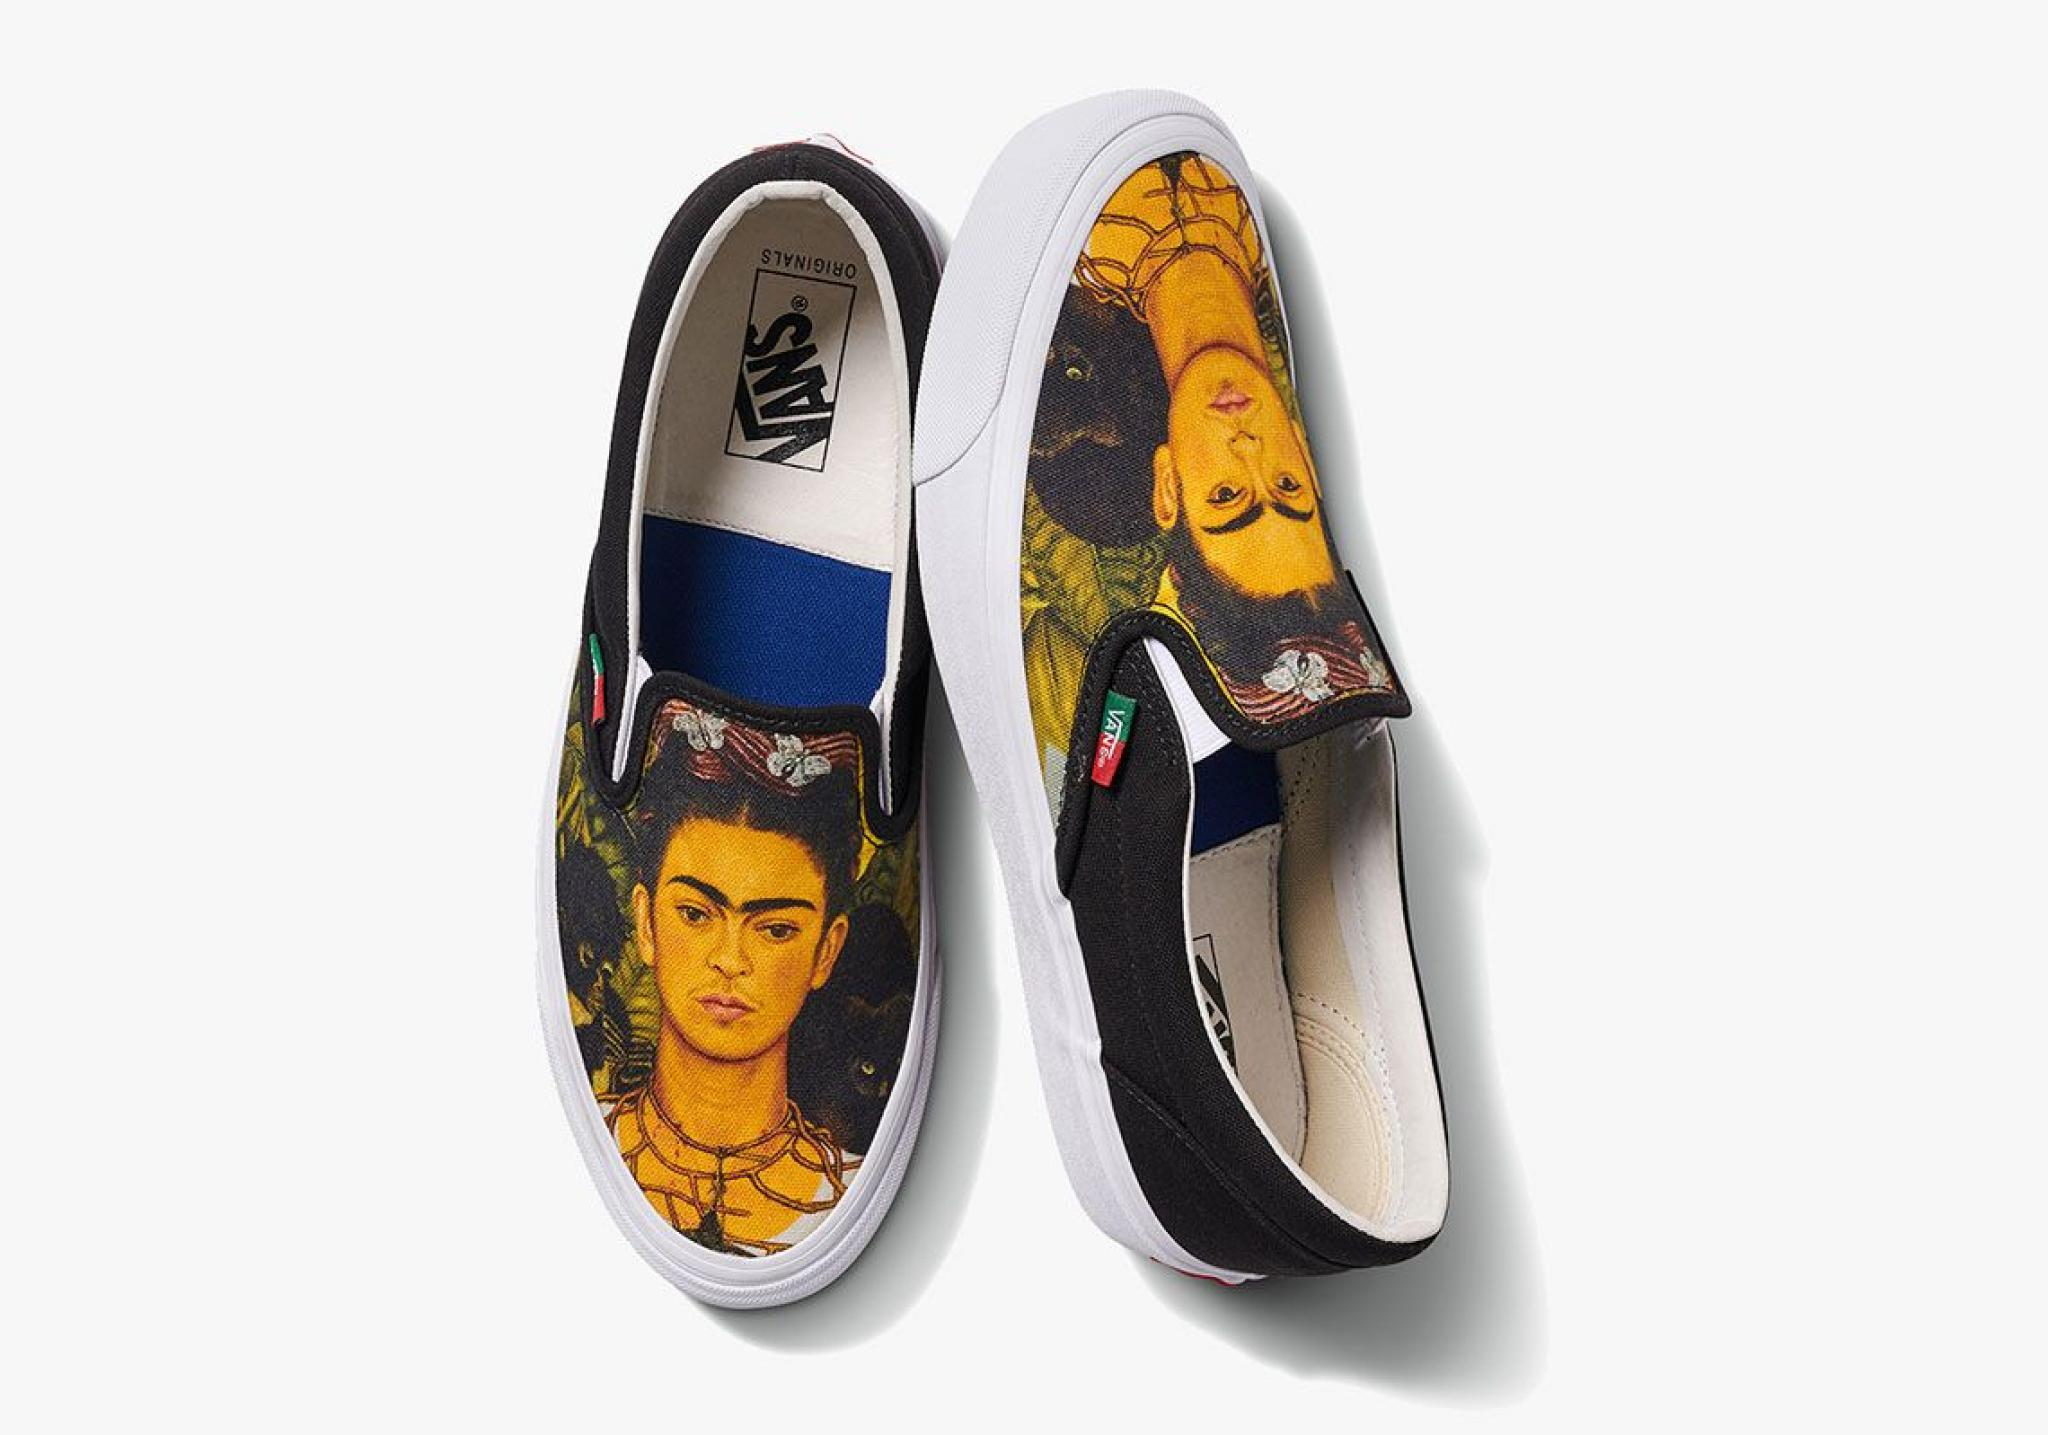 The Vans collection inspired by the work of Frida Kahlo